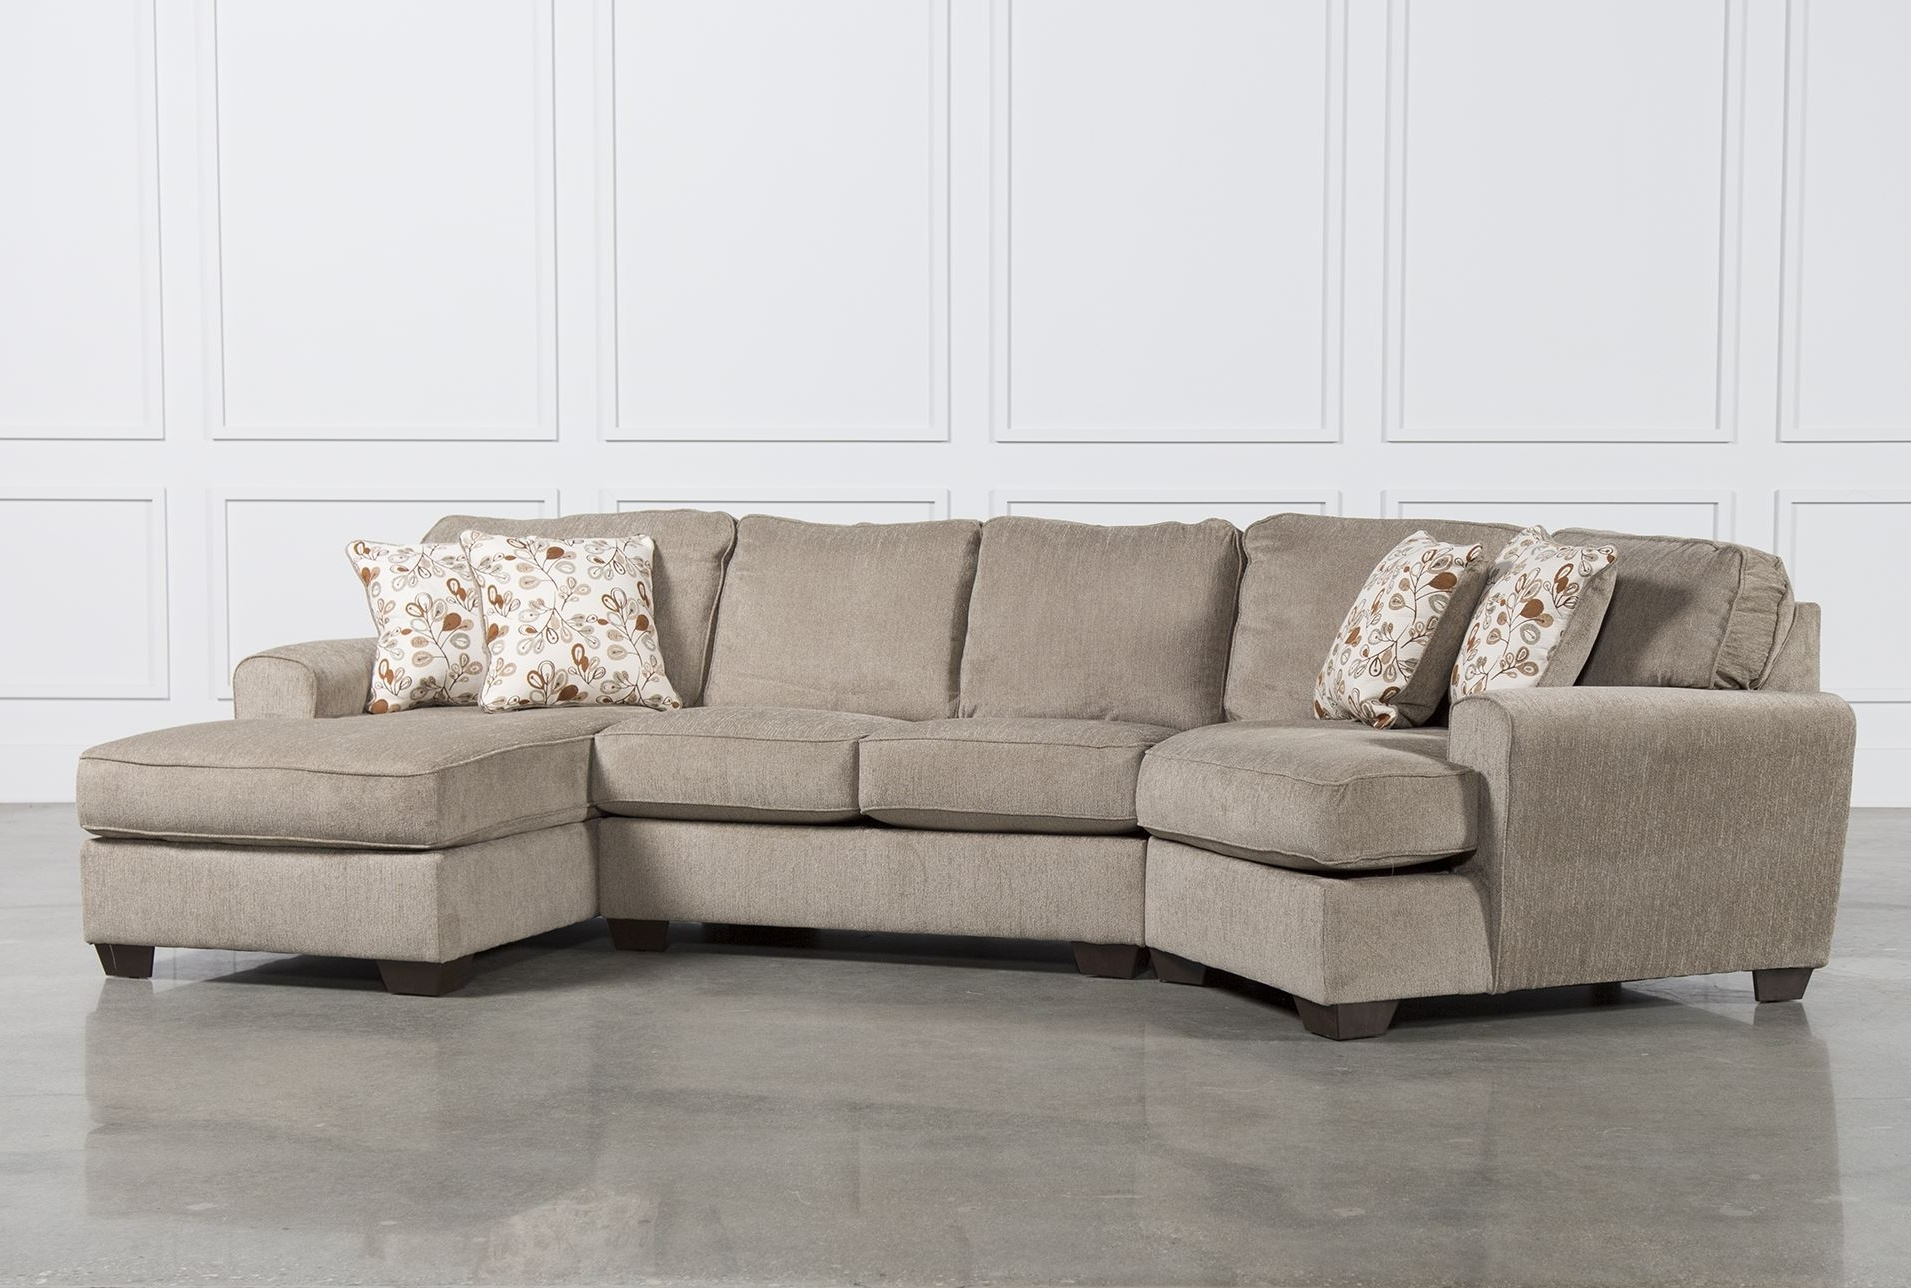 Favorite Gta Sectional Sofas For Furniture : Sectional Sofa Fabric Rc 216 088 Recliner Corner Couch (View 3 of 20)